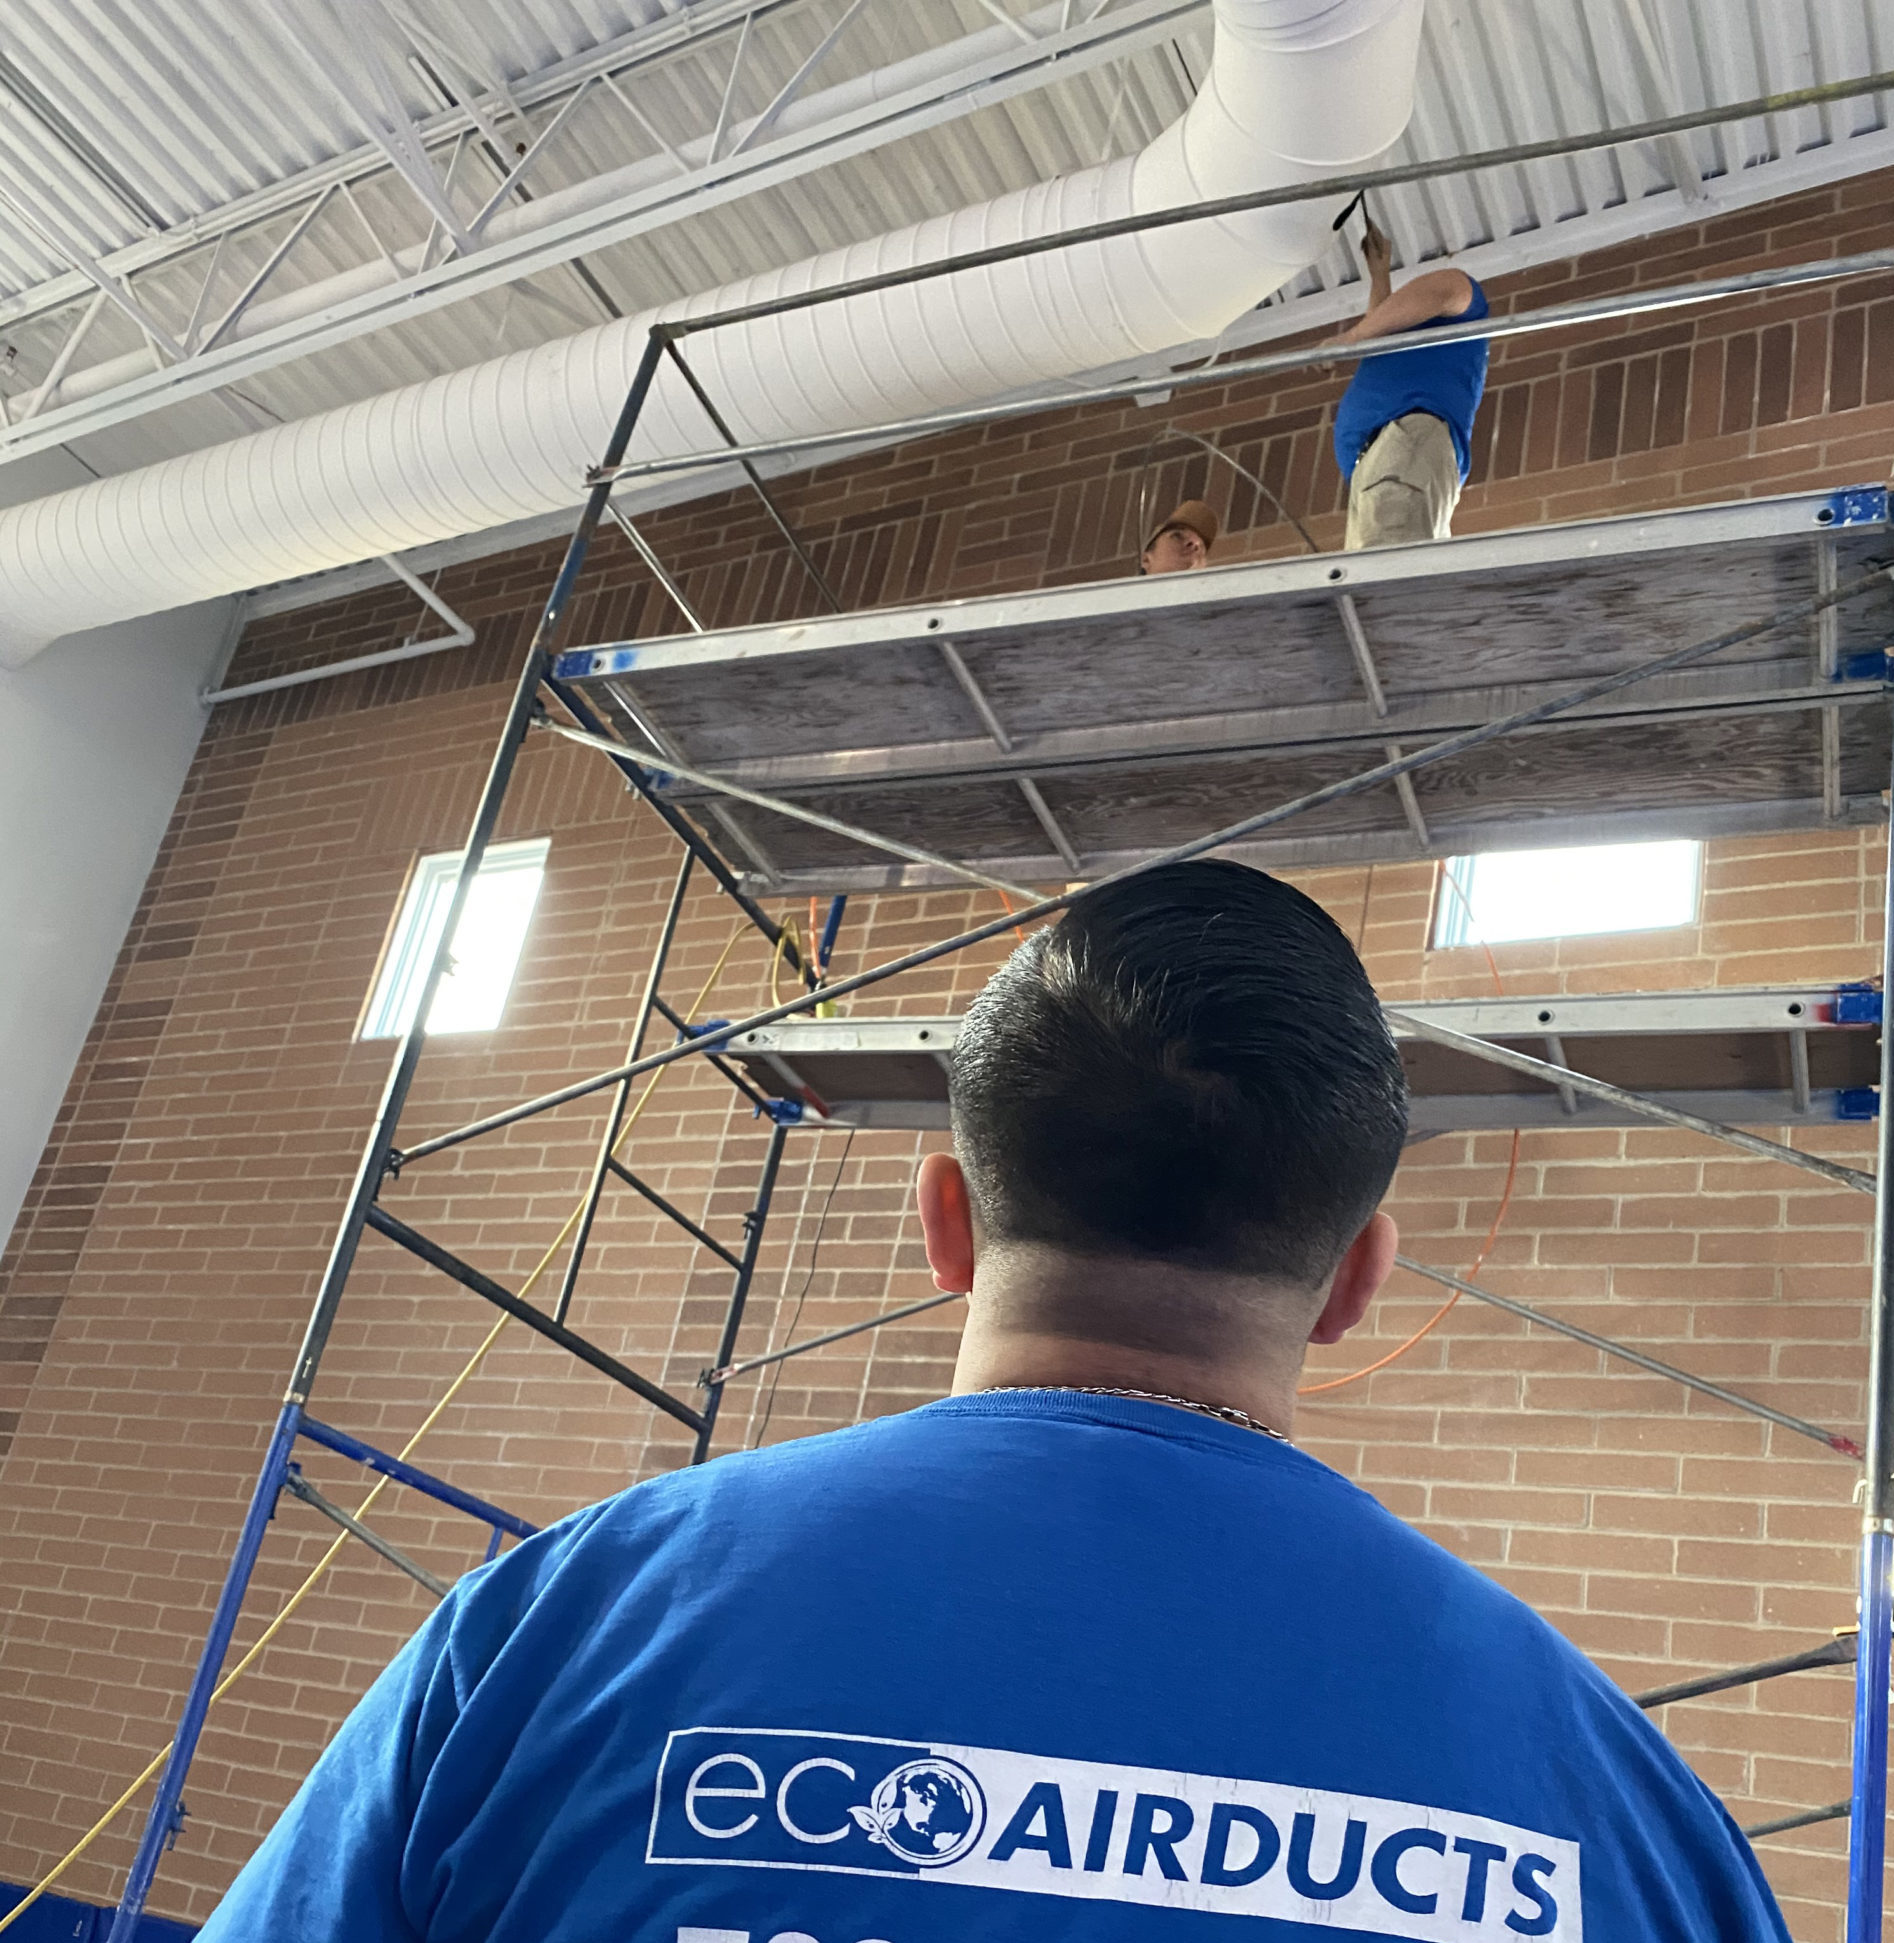 http://schaumburgairducts.com/wp-content/uploads/2020/01/eco-airduct-cleaning-services-technician-scaled-e1578697385781.jpg